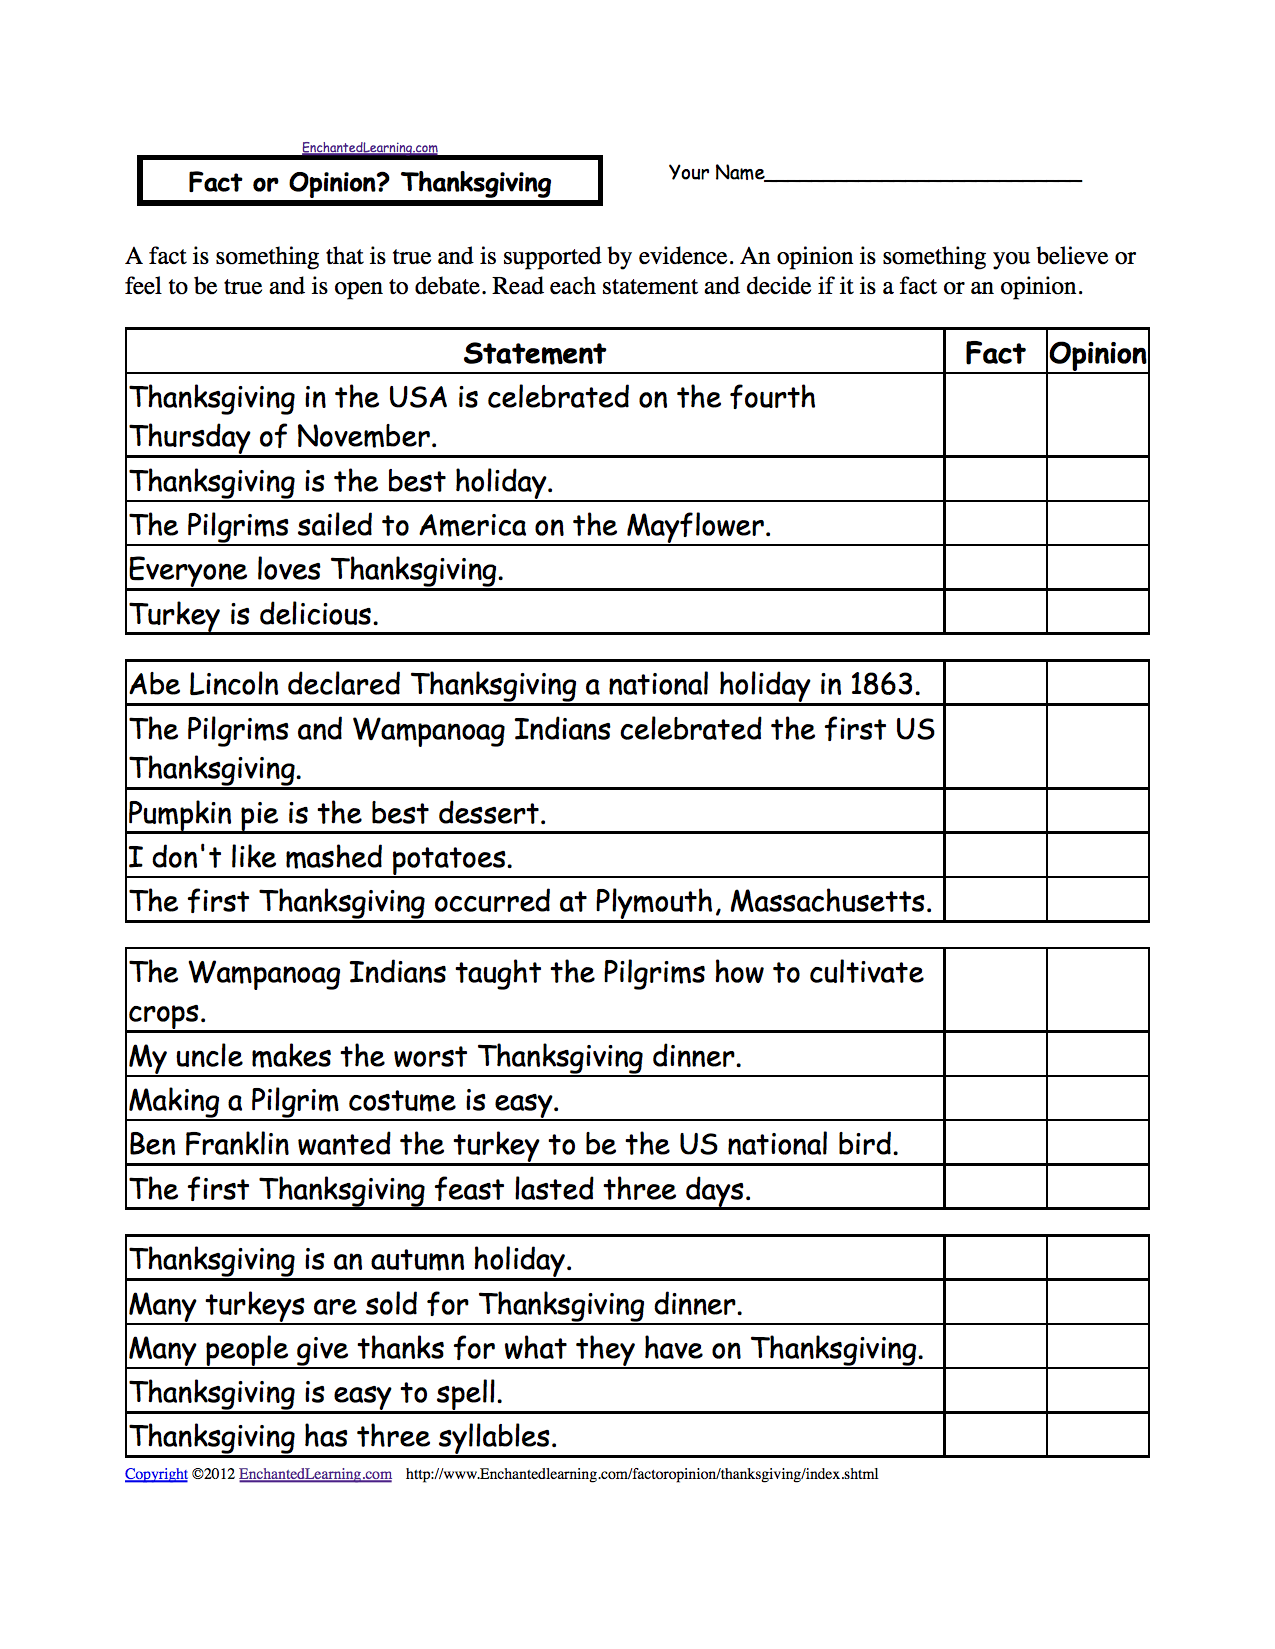 worksheet Fact Opinion Worksheet free thanksgiving resources fact and opinion printable plus lots more crafts worksheets